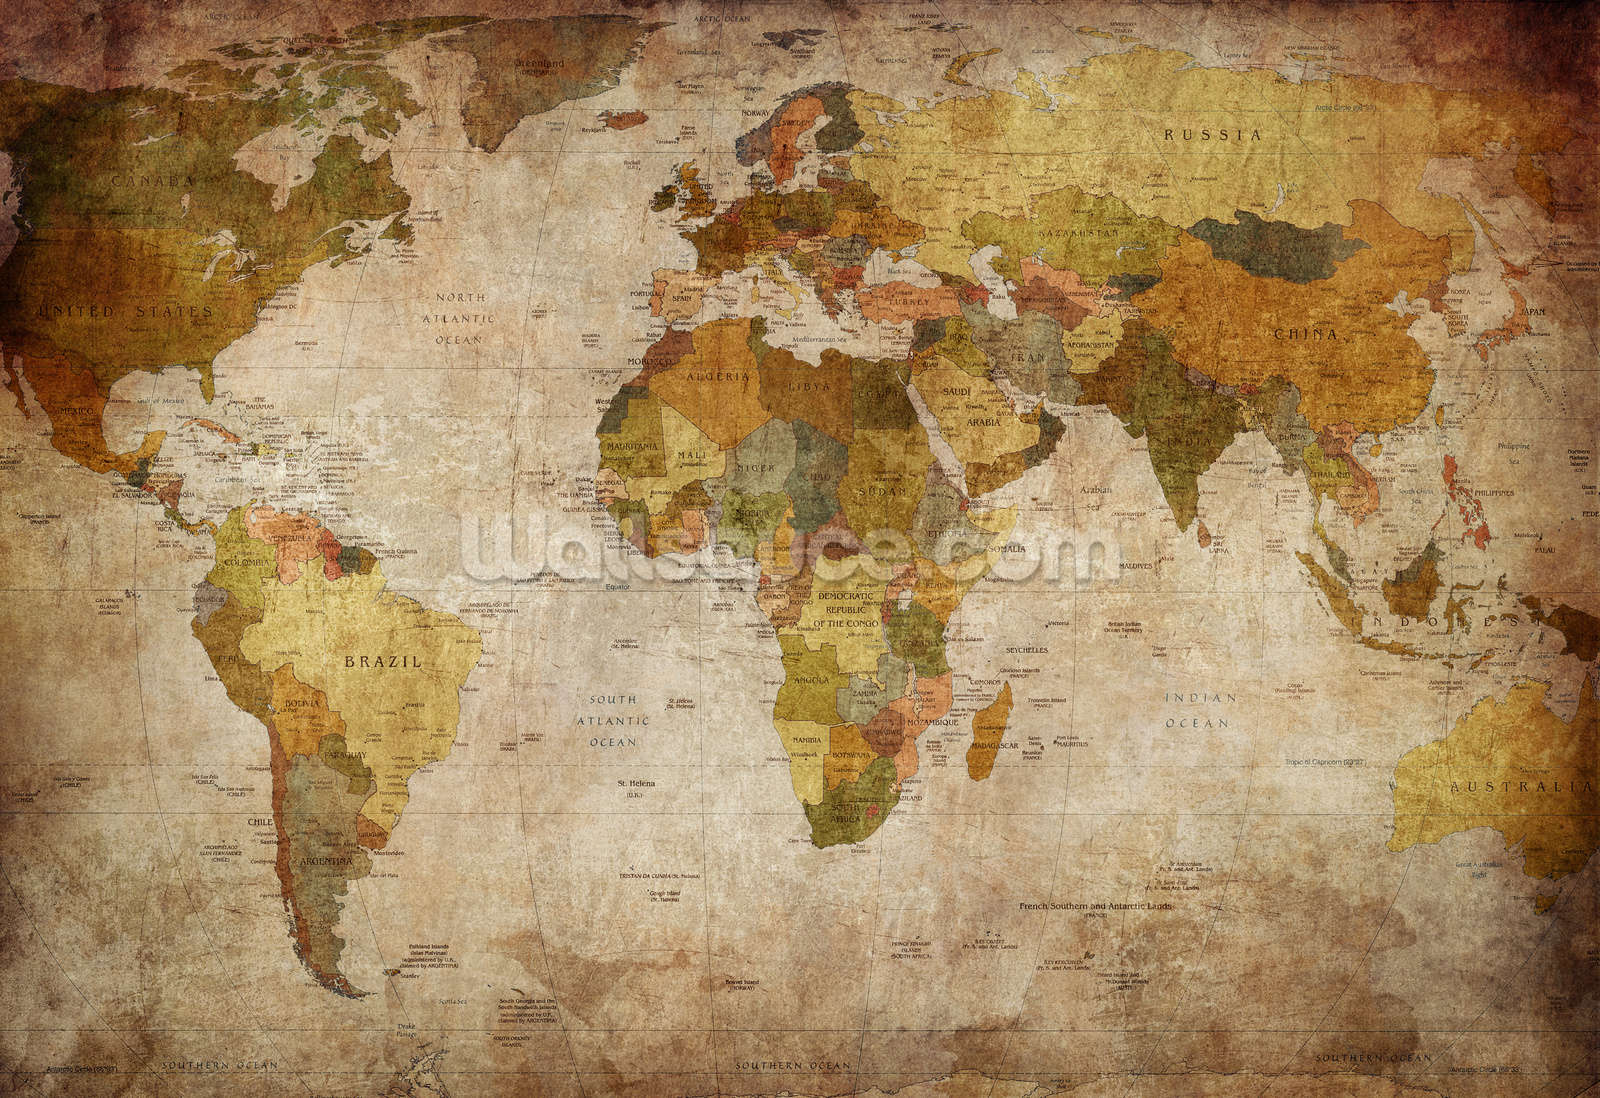 Old style world map wallpaper wall mural wallsauce old style world map wall mural photo wallpaper gumiabroncs Images